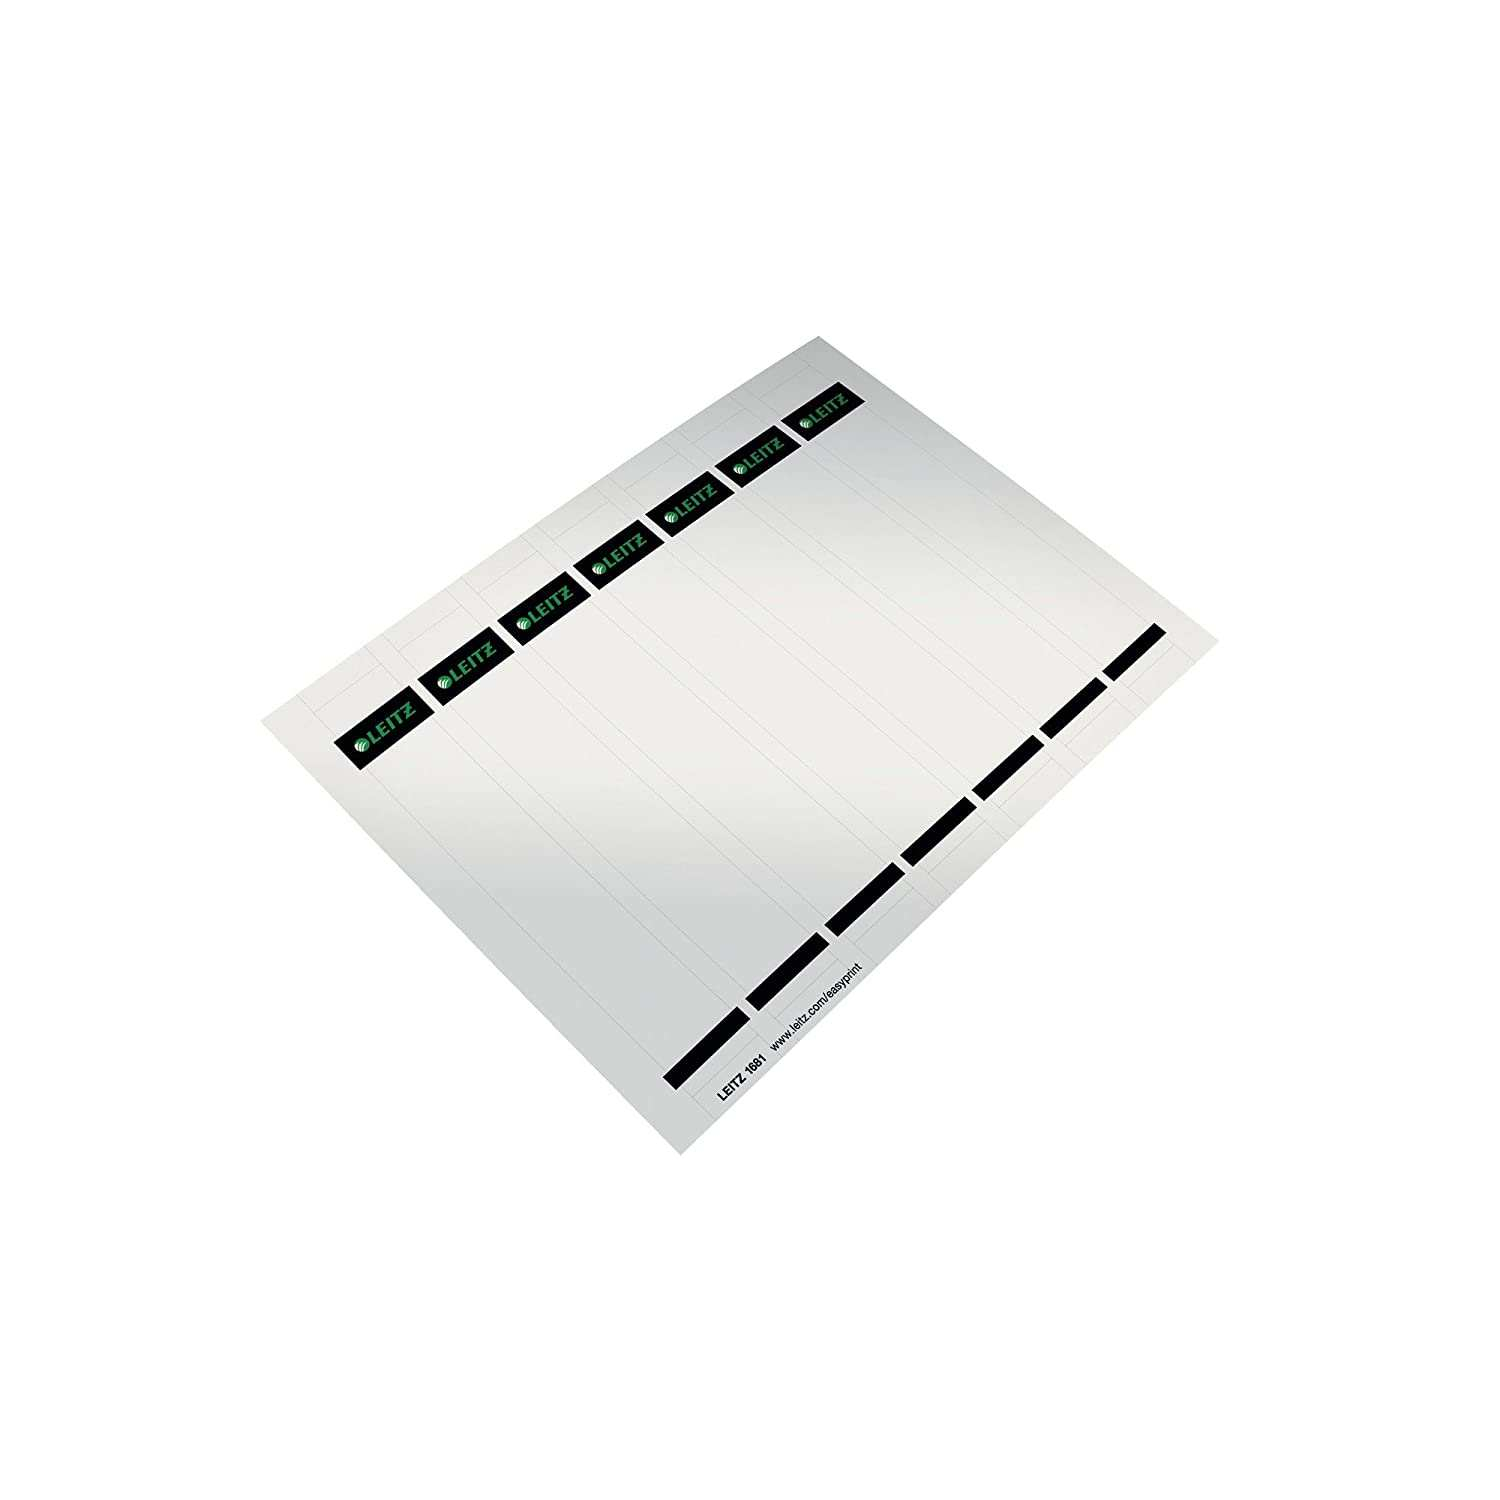 10 Pieces 32 X 190 Mm Leitz Self Adhesive Spine Labels For Lever